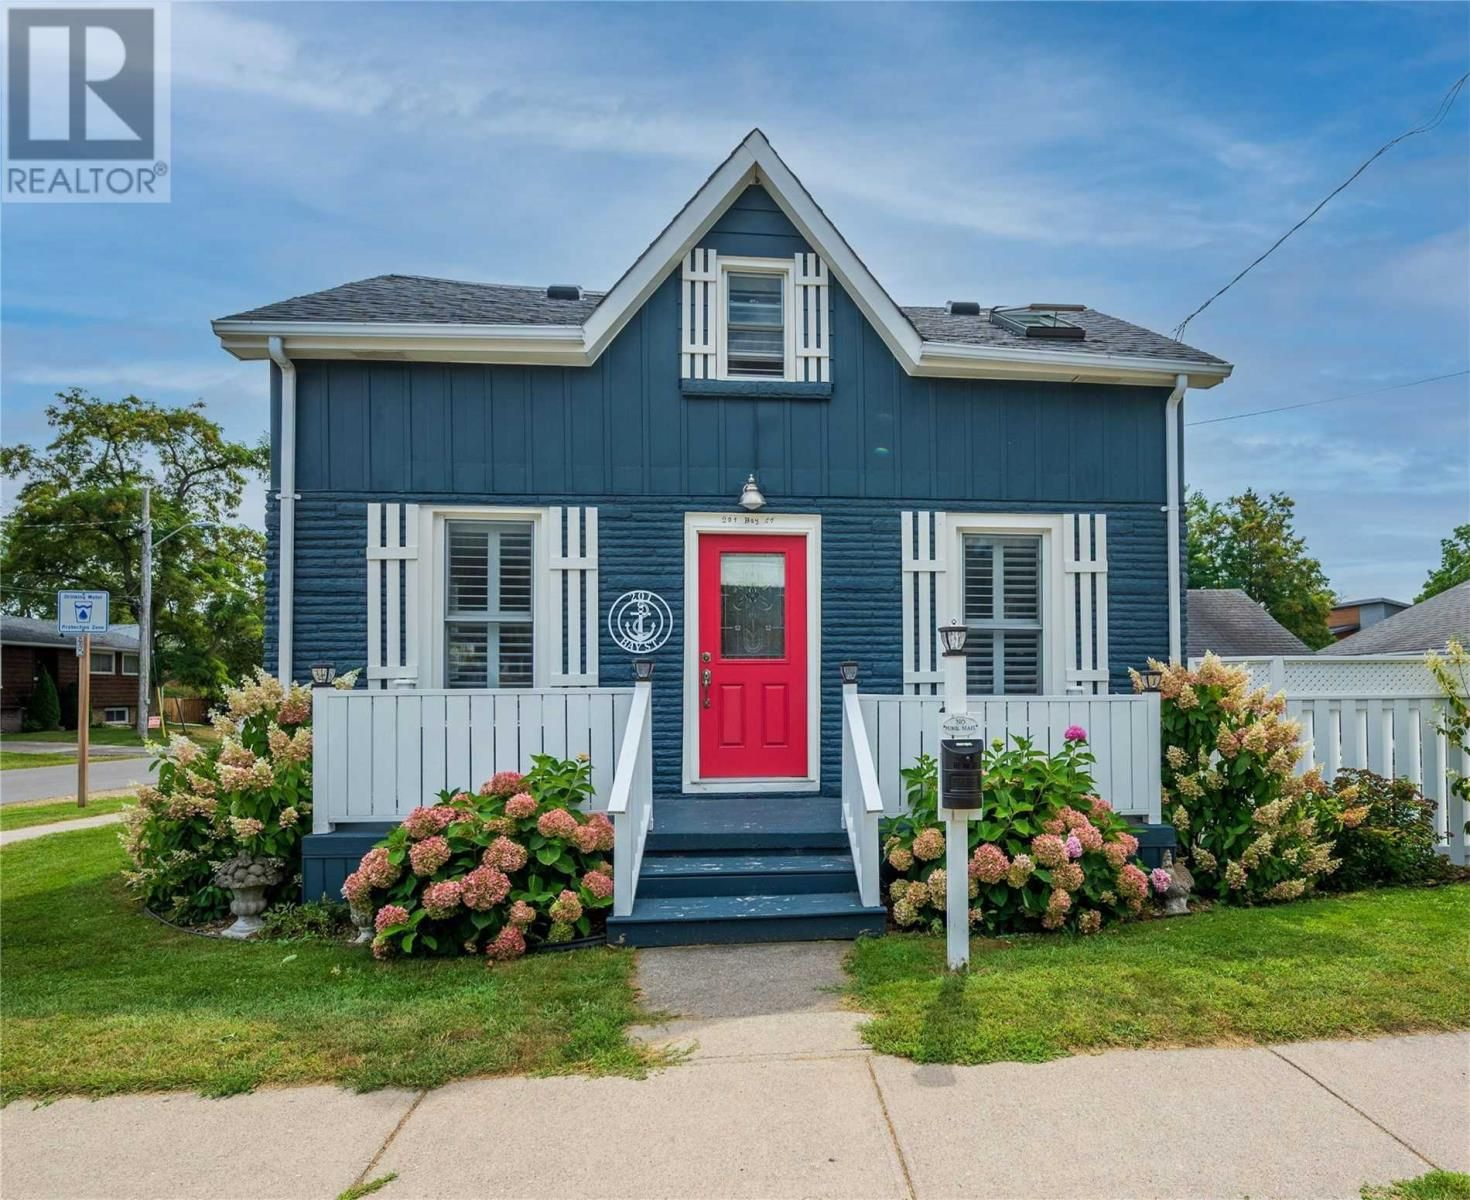 Main Photo: 201 BAY ST in Cobourg: House for sale : MLS®# X5357400